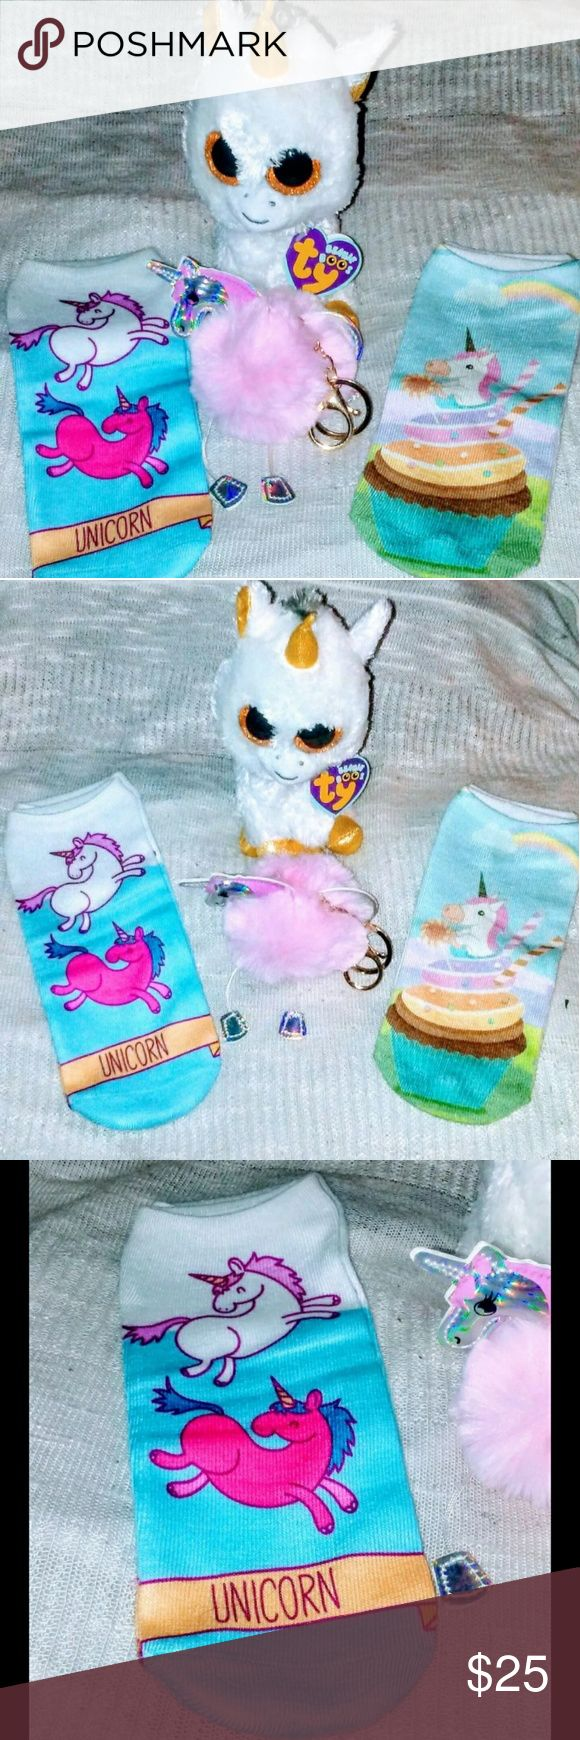 Unicorn Bundle All brand new, with tags....this cute bundle is for the mystical side of you. It includes 2 pairs of adorable sox, an unicorn, puff ball, purse/keychain & an unicorn Beanie Boo(limited edition)....who wouldn't want this fairy tale set, added to their collection? perfectreds closet Other